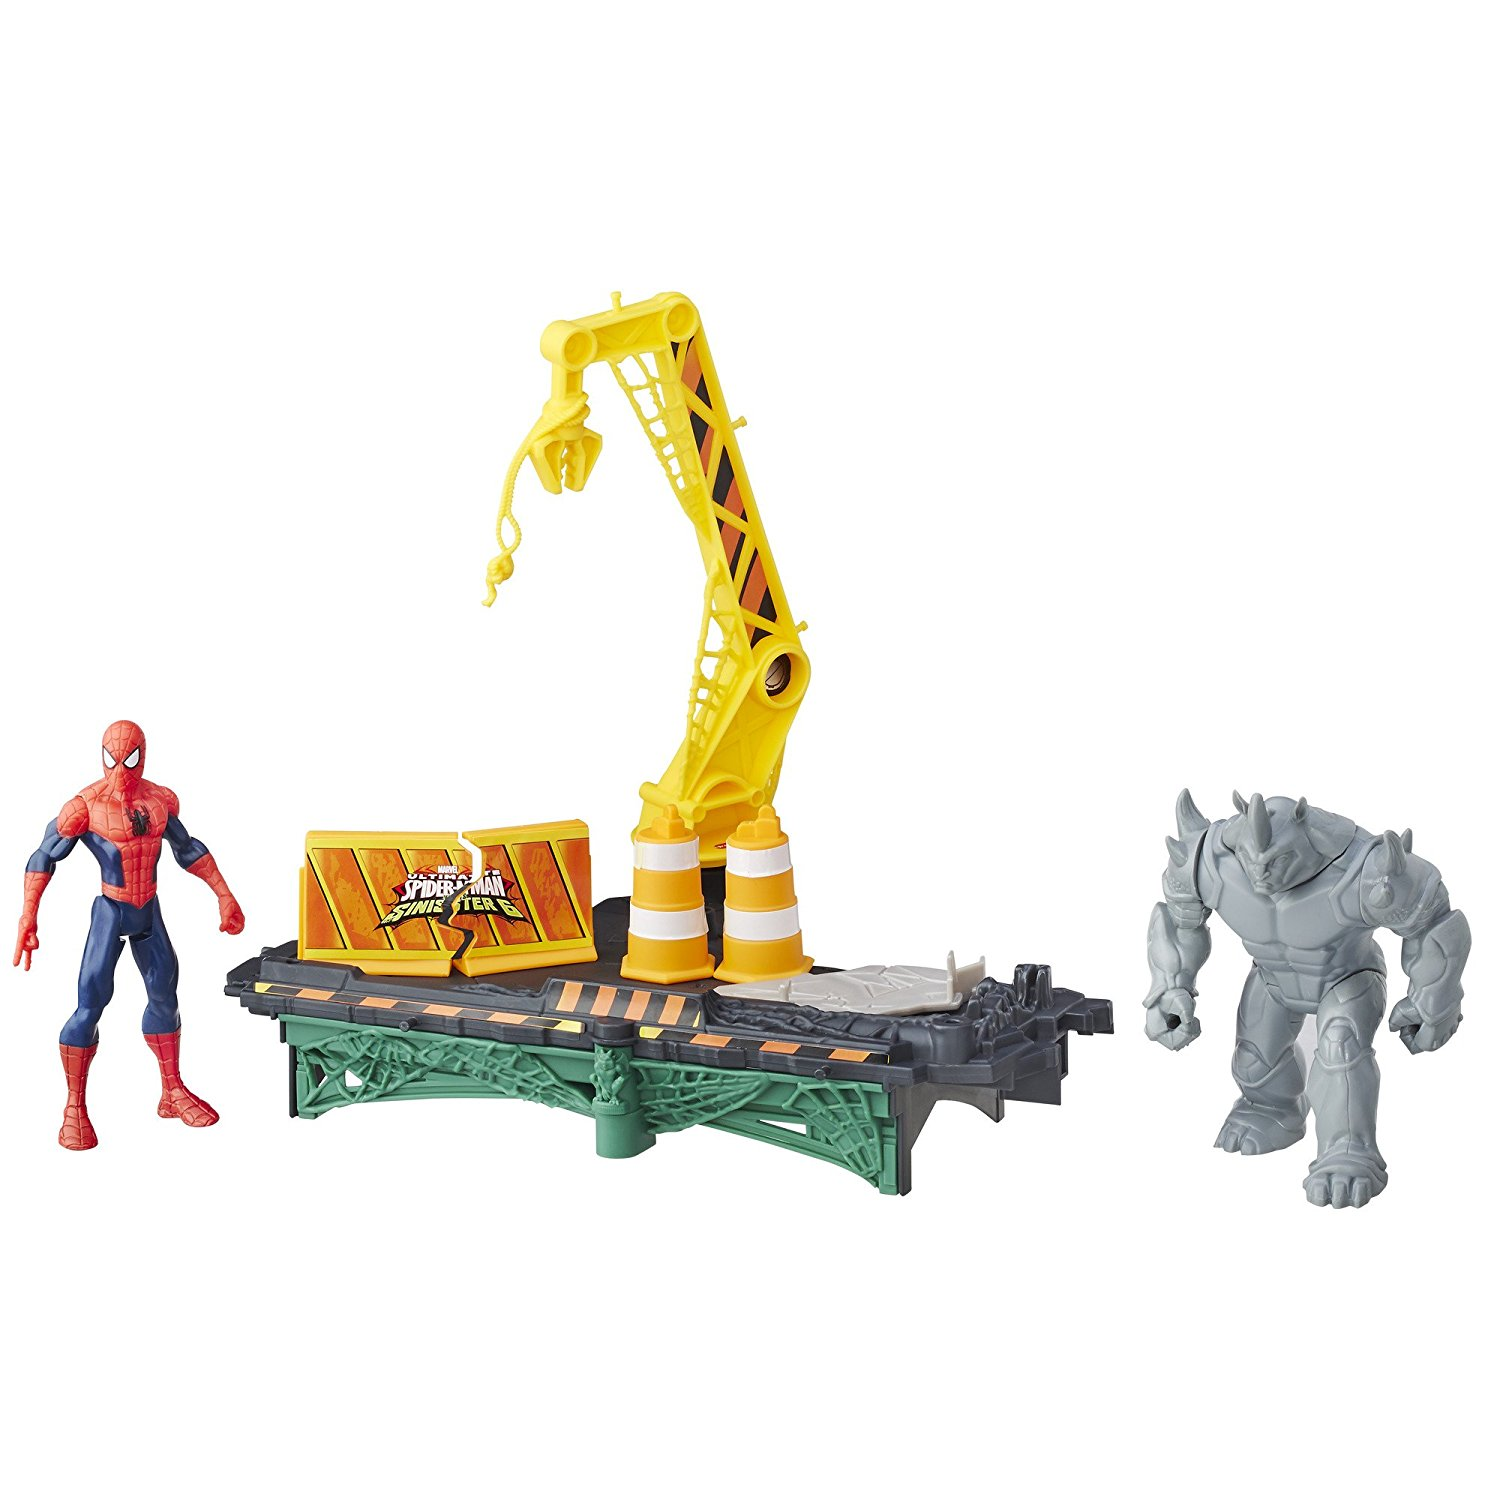 Marvel Rampage Play Set $4.18!